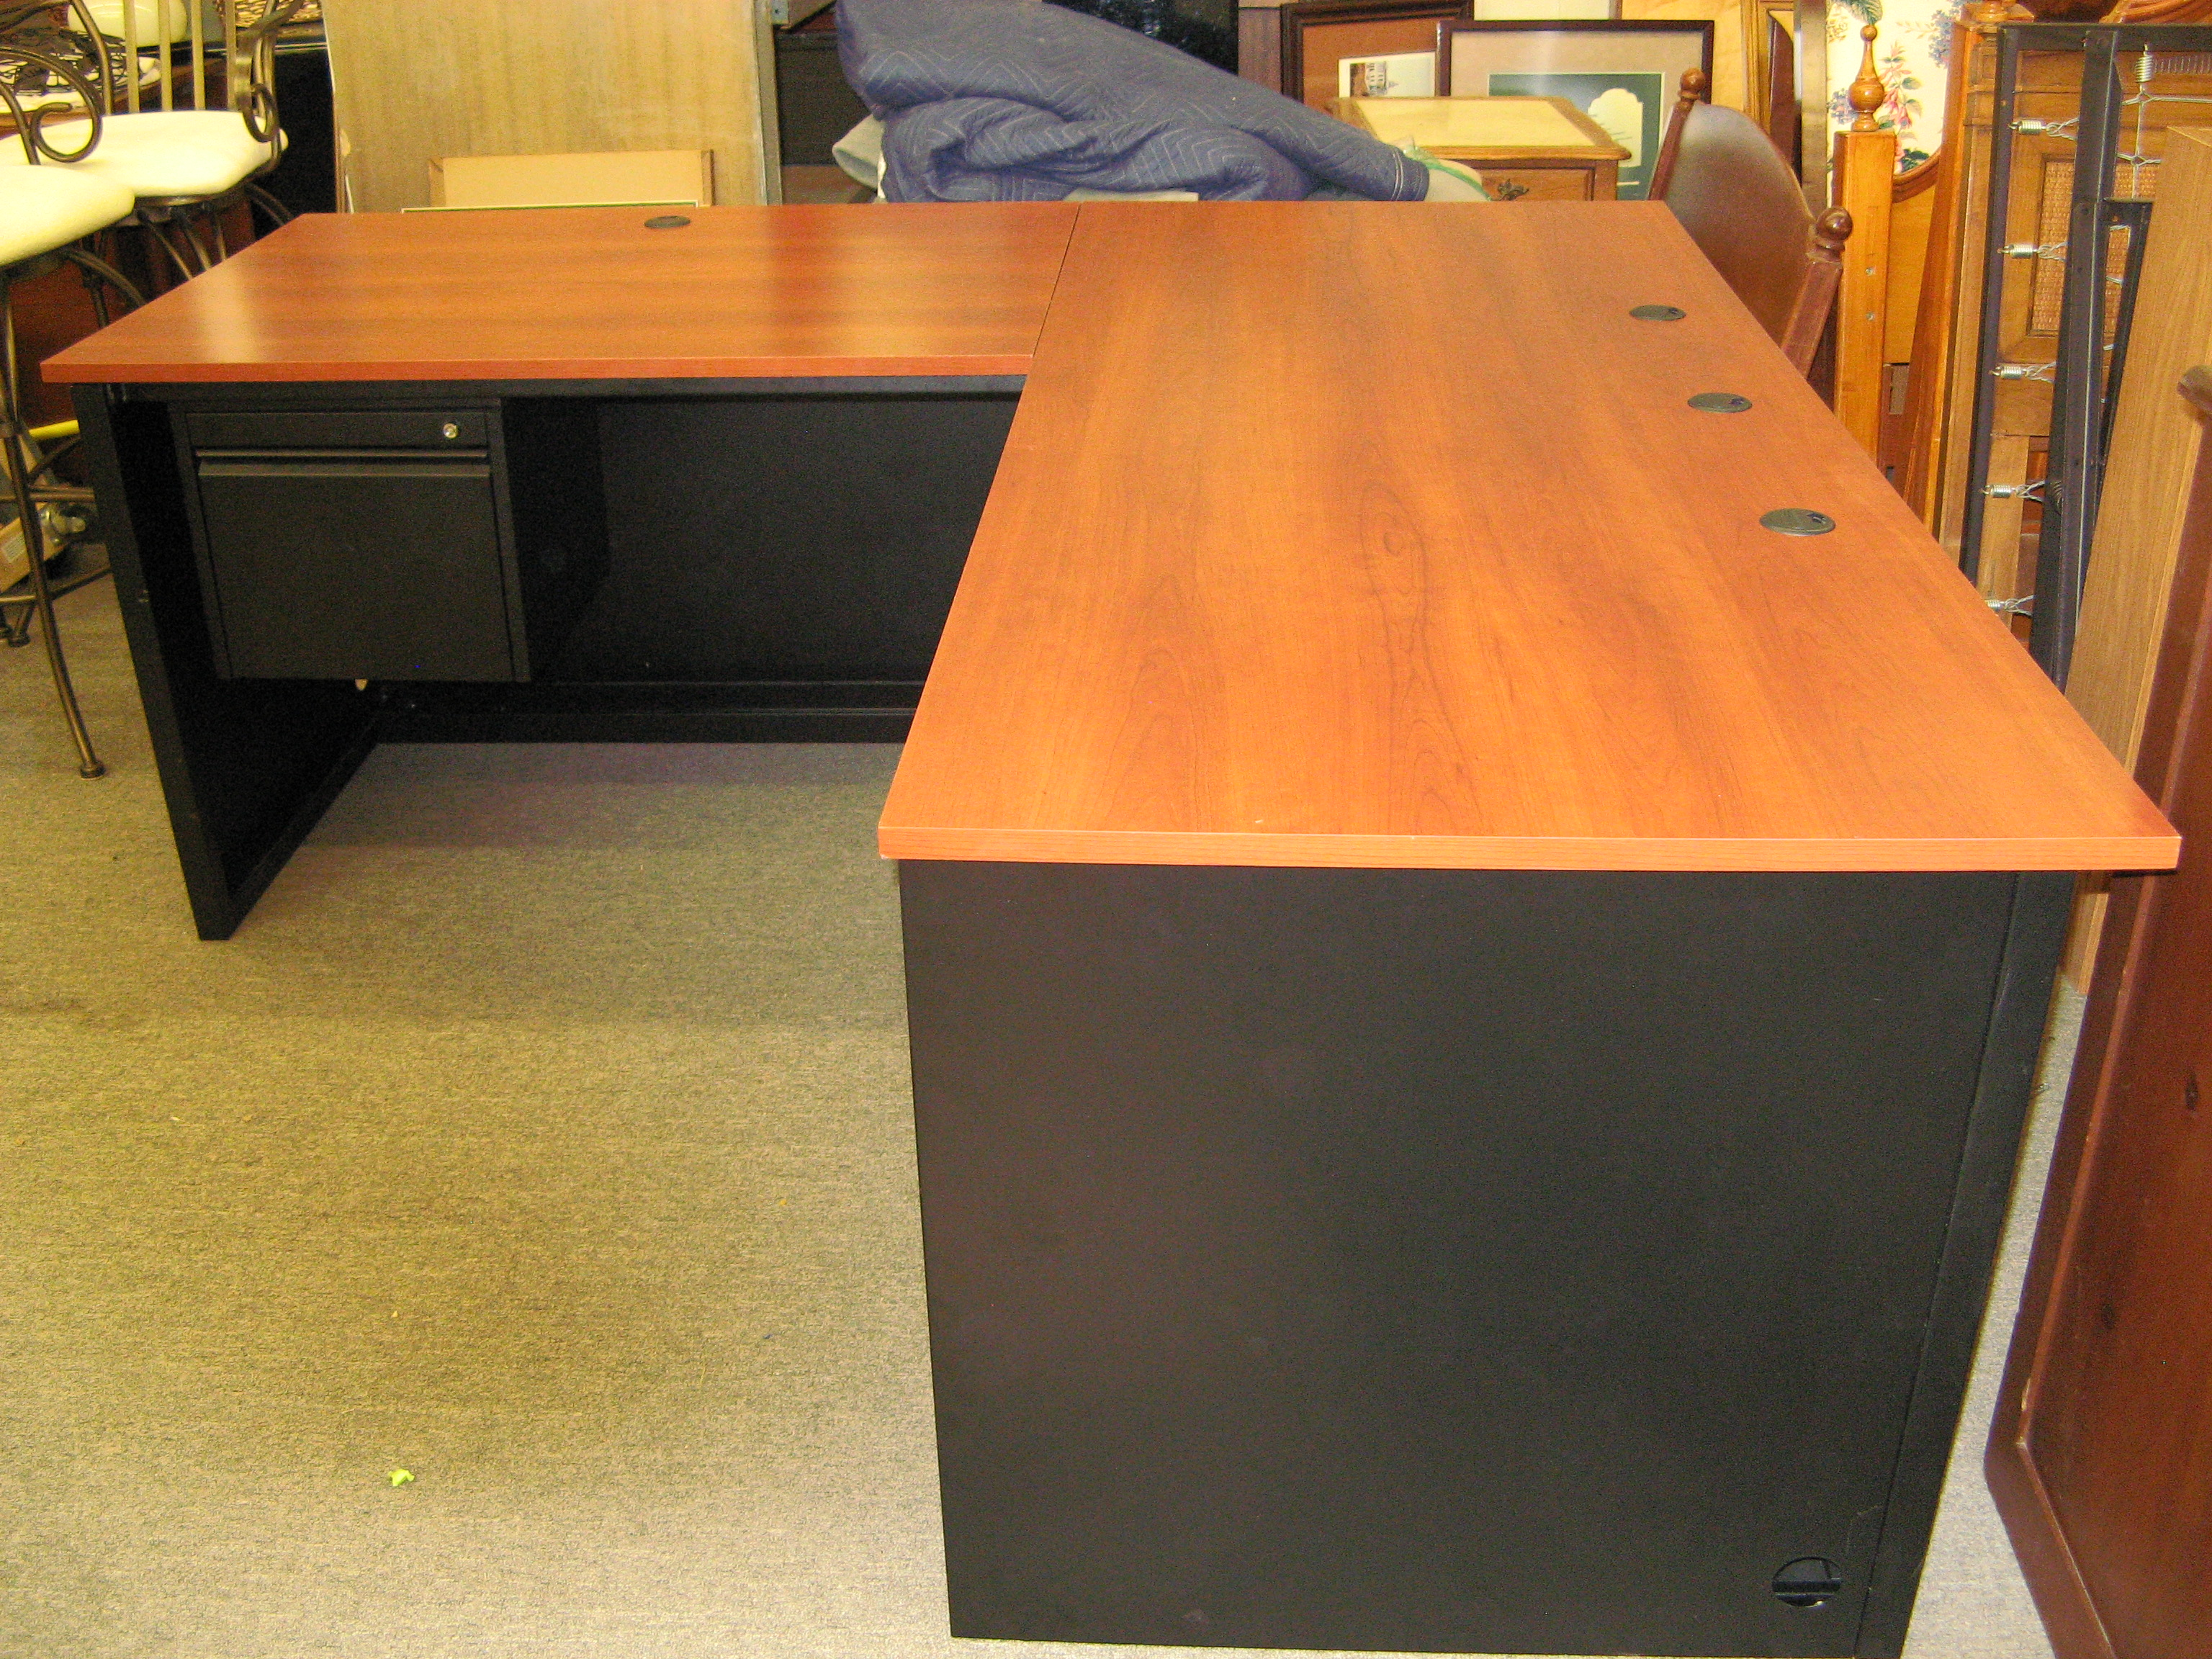 L-Shaped Desk with 5 Wheels + Ports for Cables & Cords